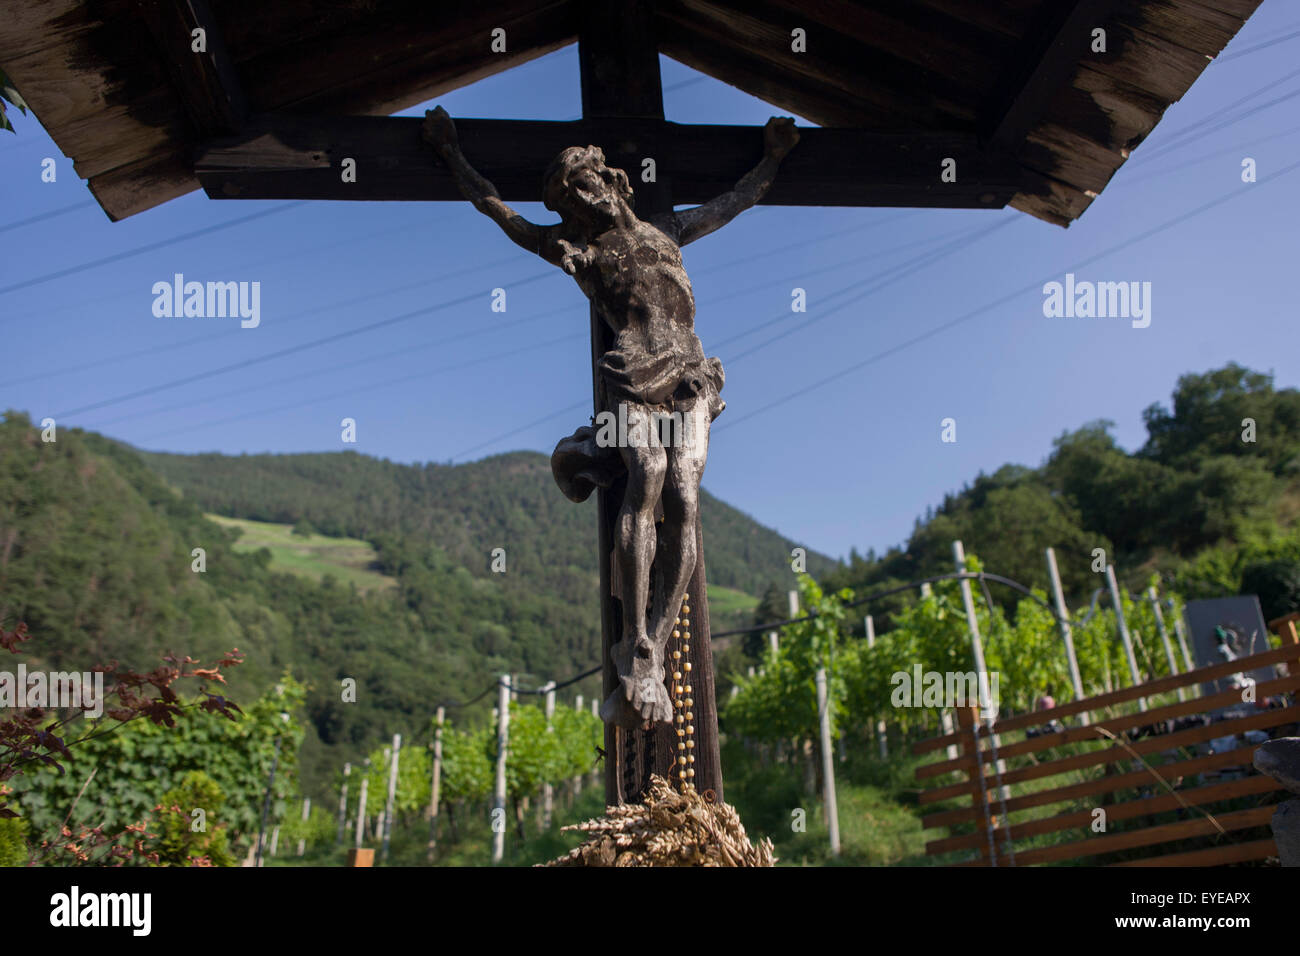 A crucifix located on the edge of a vineyard in the South Tyrolean town of Klausen-Chiusa in northern Italy. - Stock Image